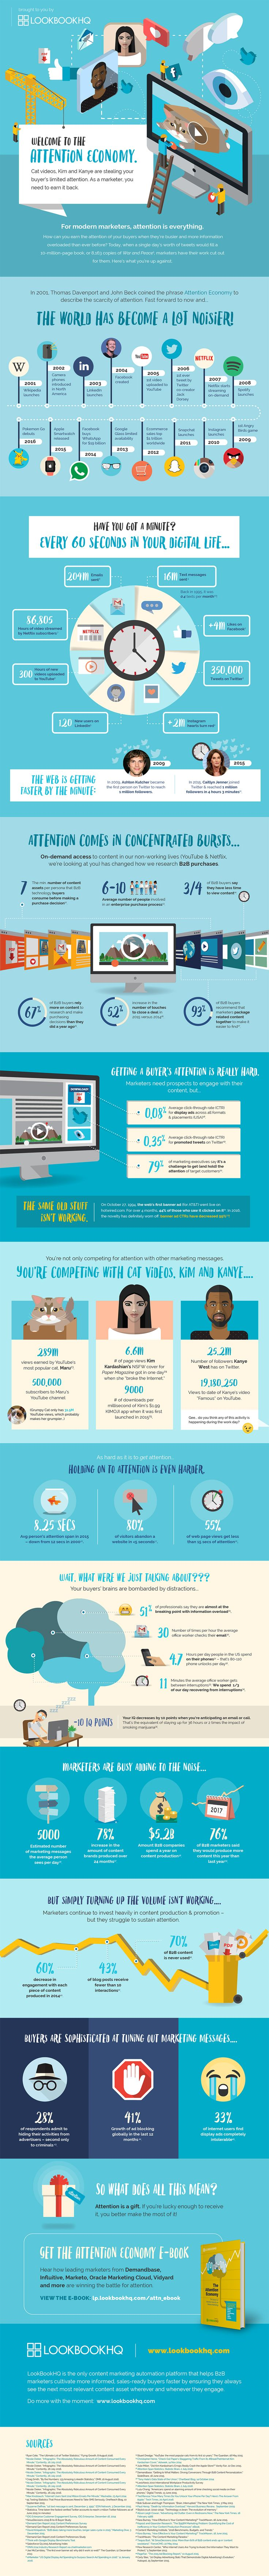 Your Marketing Strategy Sucks! Why You Don't Grab Attention Online [Infographic] - http://topseosoft.com/your-marketing-strategy-sucks-why-you-dont-grab-attention-online-infographic/